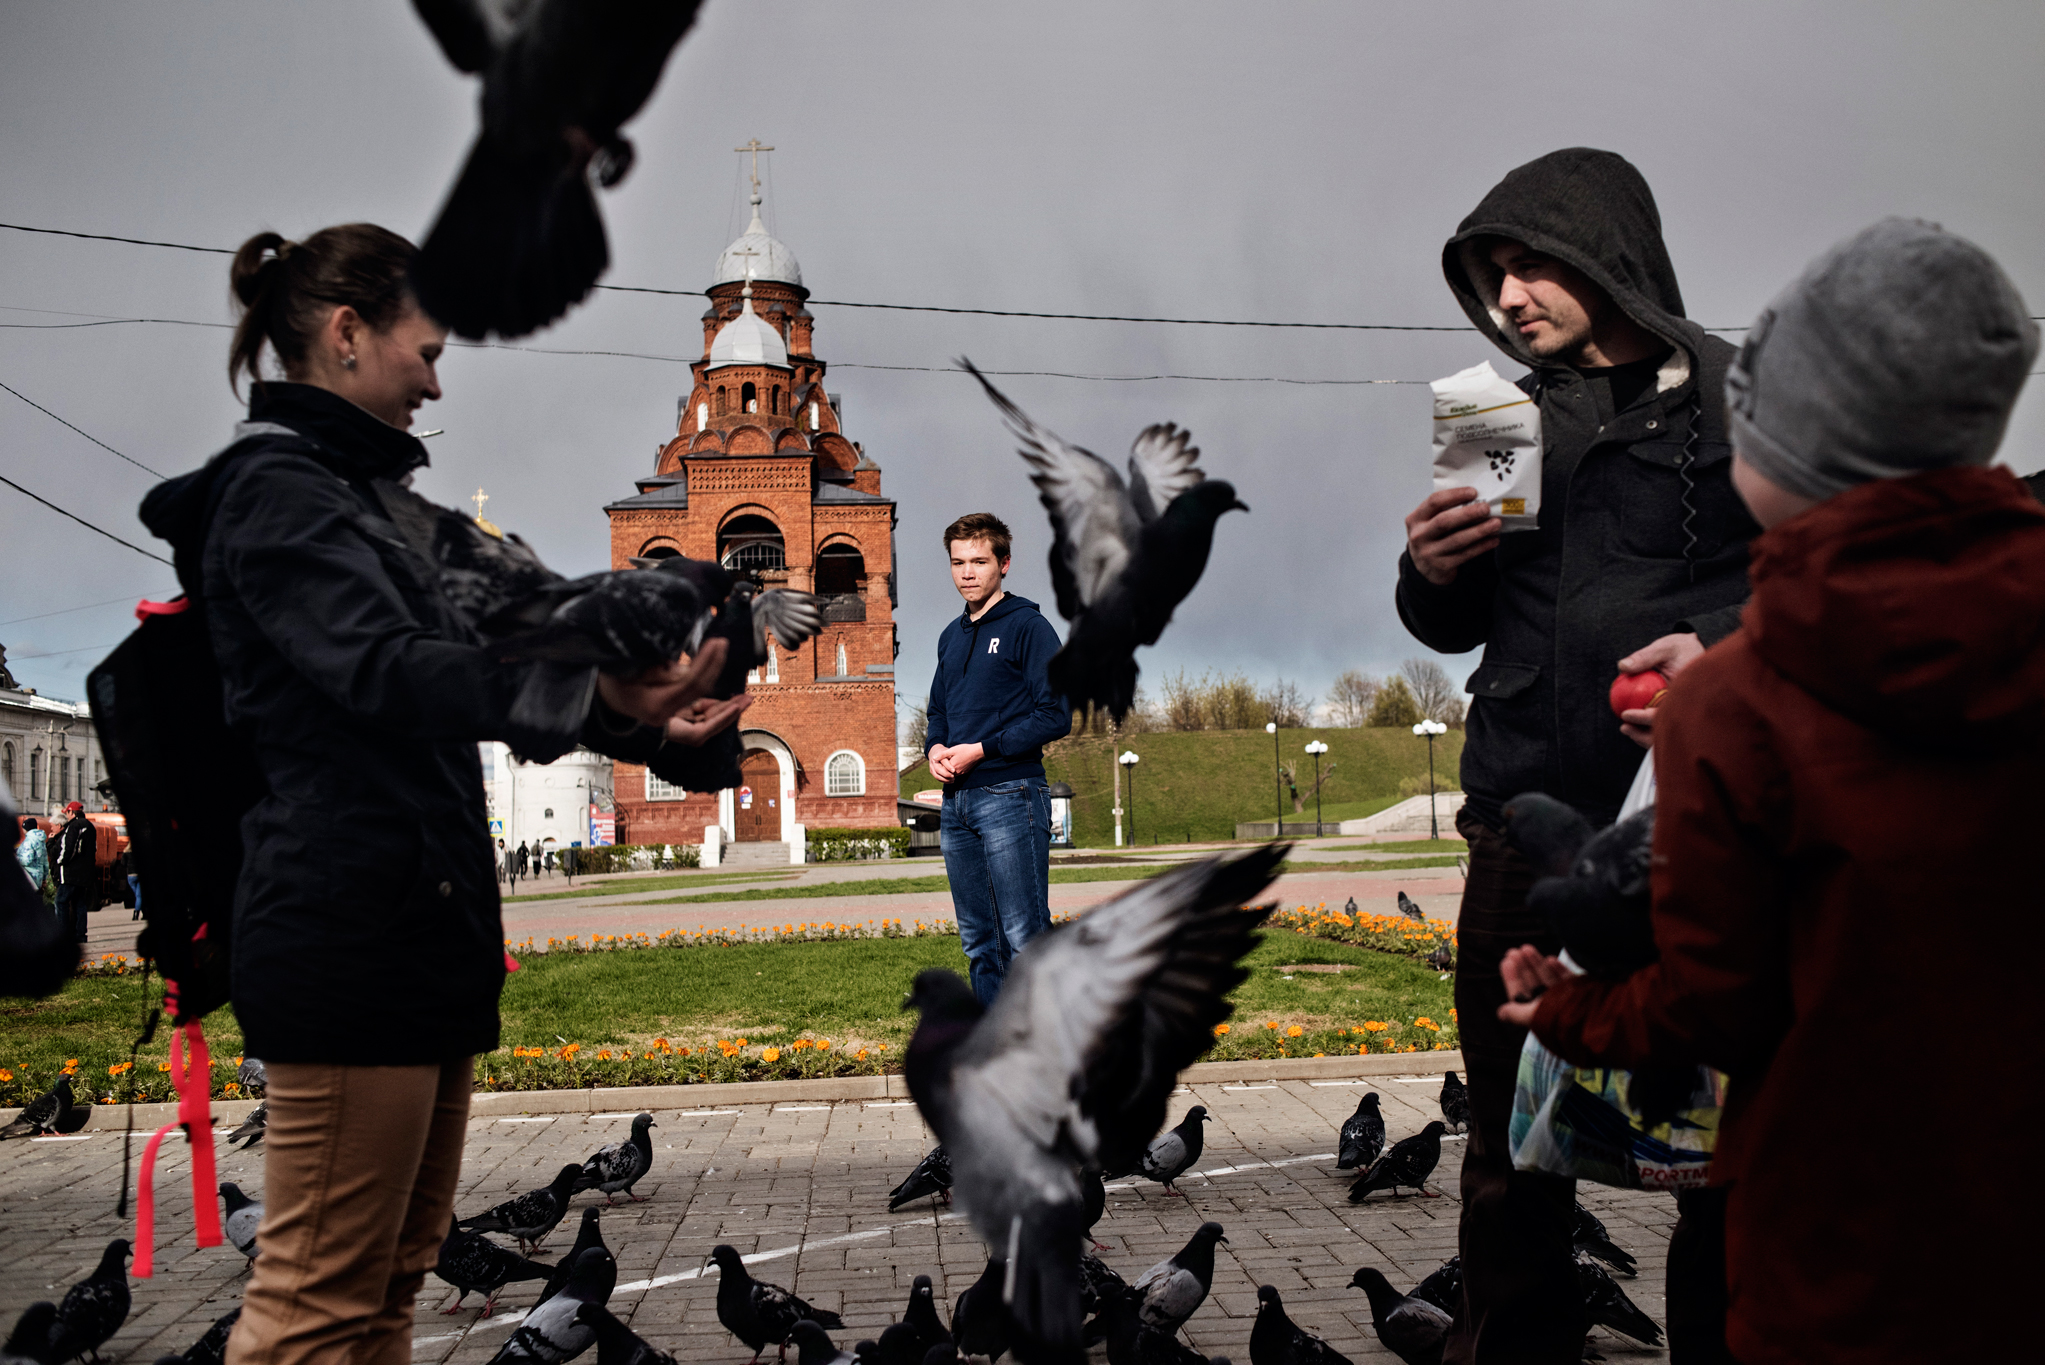 """Born in 2000, the year Russian President Vladimir Putin first came to power, Mikhail (center), represents a generation that Russians have taken to calling """"Putin's Children."""" The speech he gave at an anti-Putin demonstration in March got him in trouble at school in his hometown of Vladimir, Russia. Pictured in May 2017 in Vladimir, he says he still plans to join the next protest, which is scheduled for June 12."""